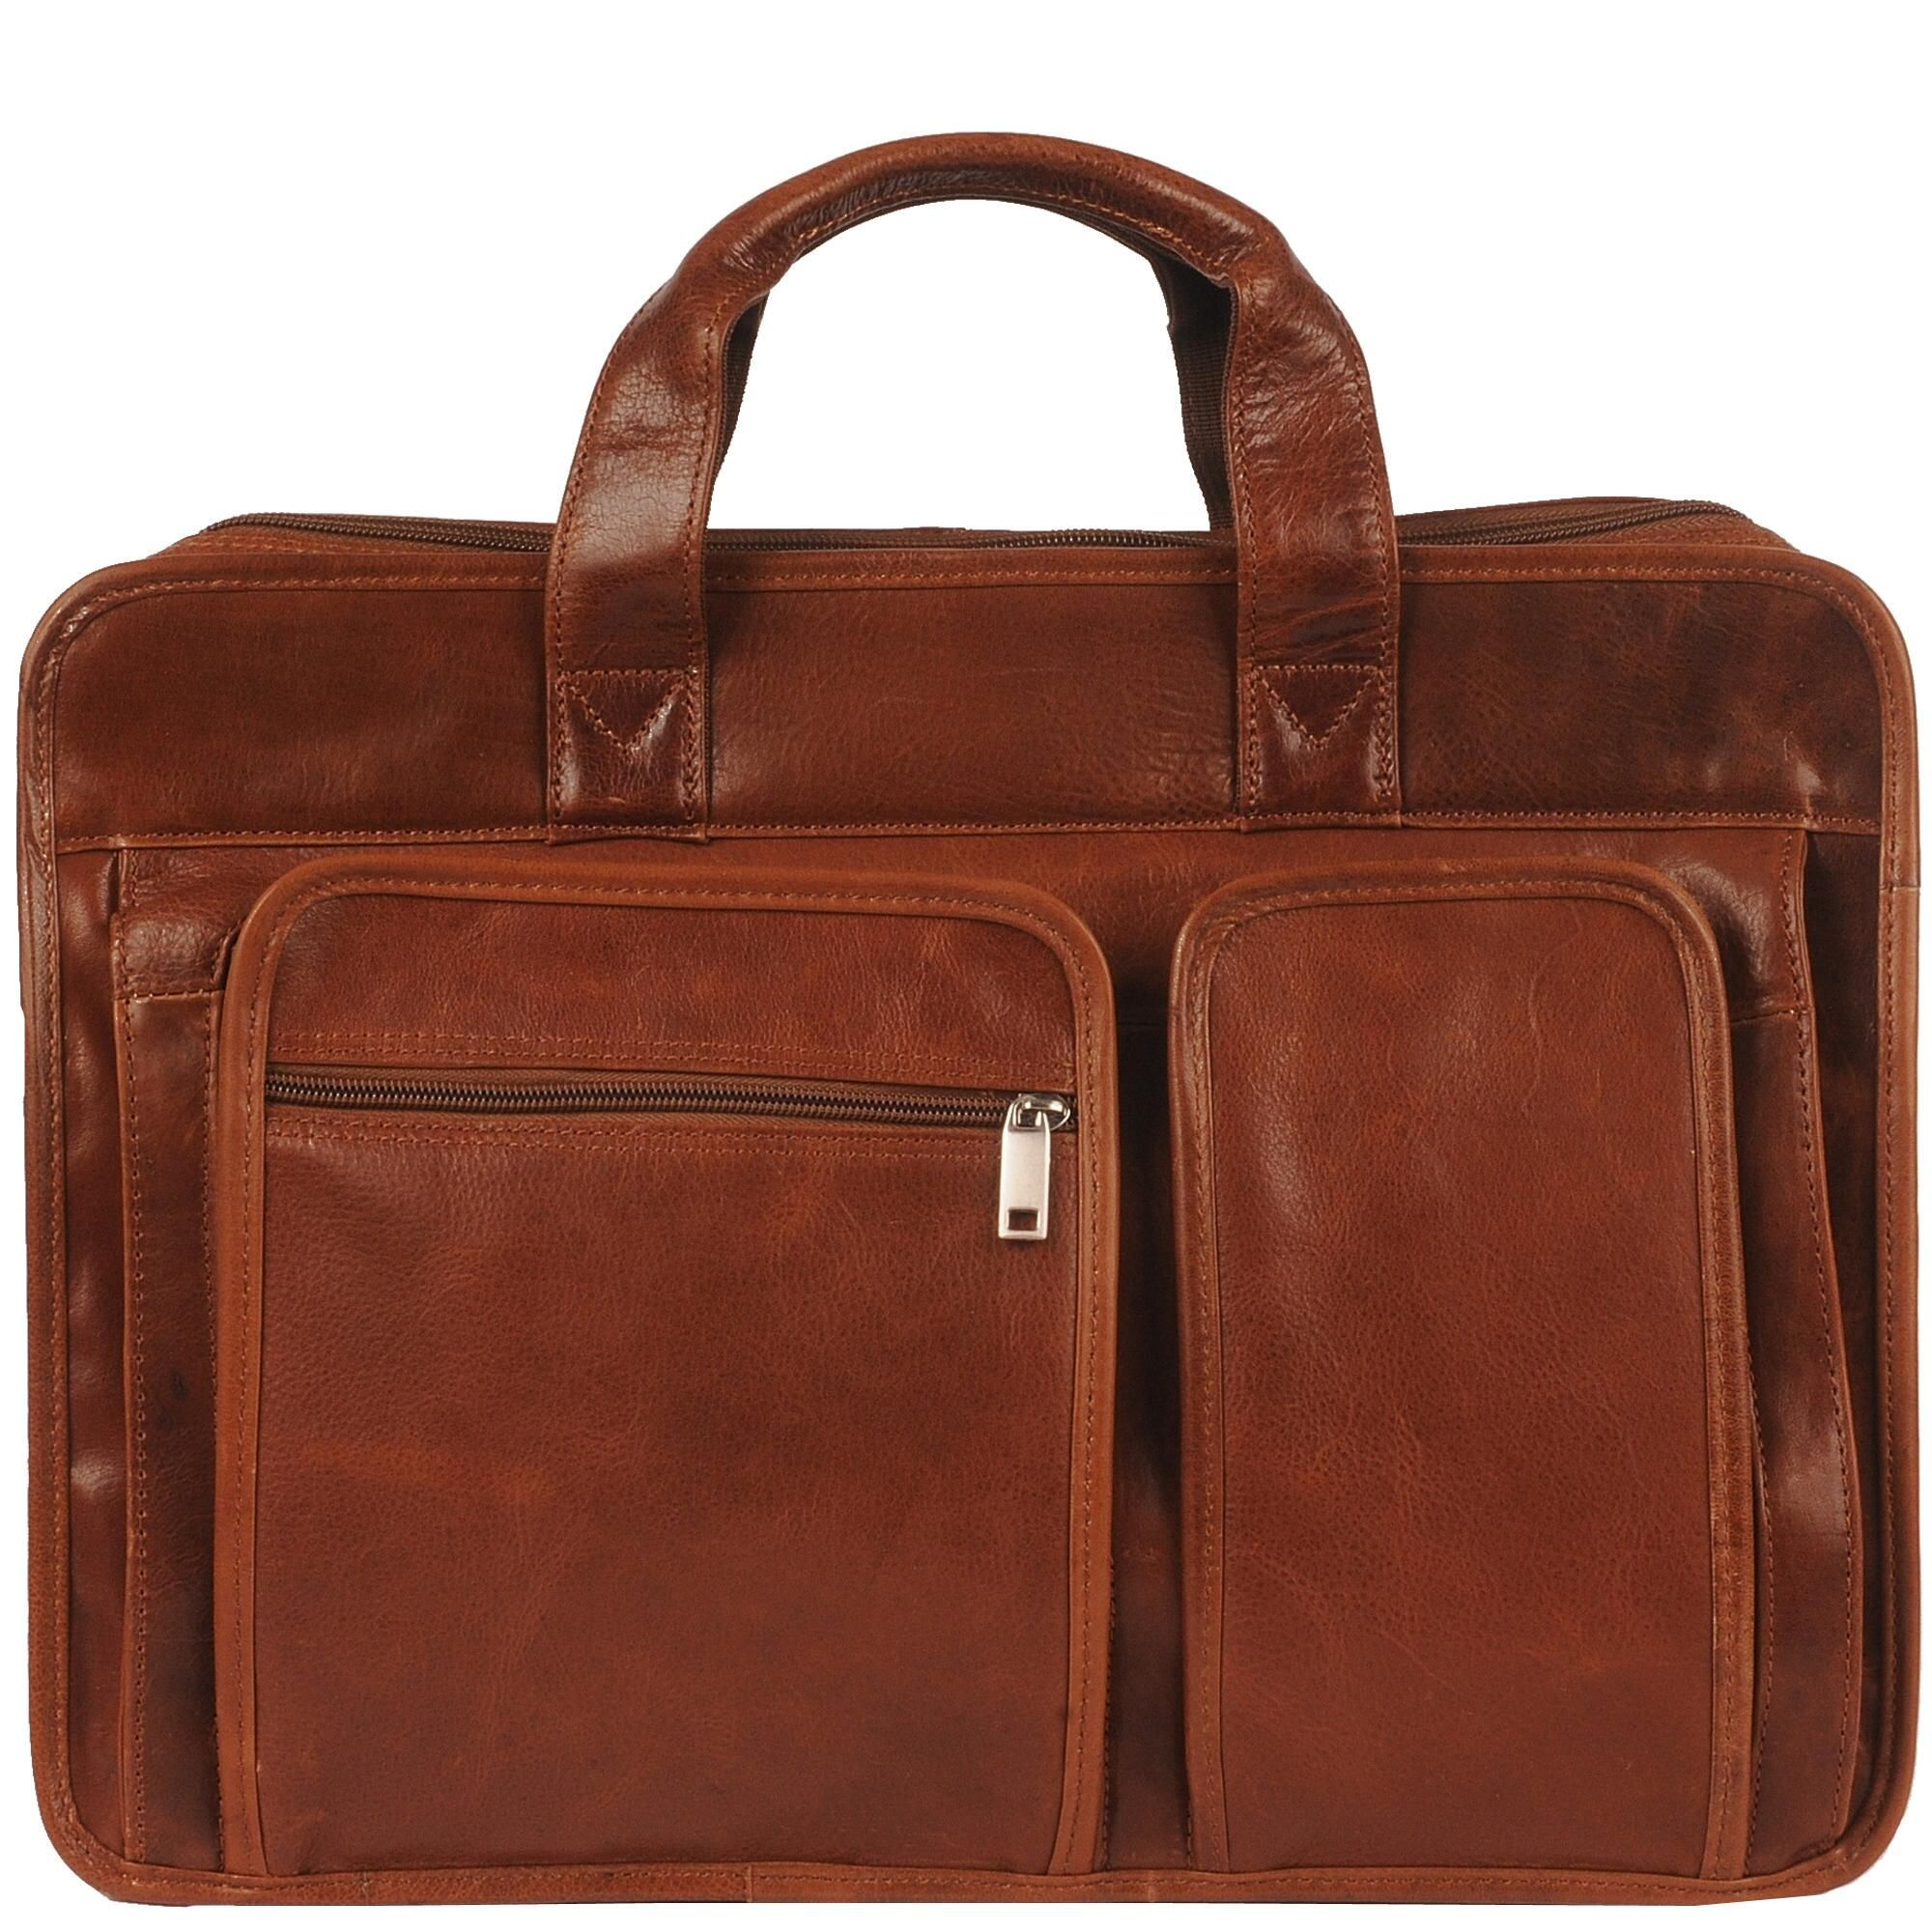 Rugged Leather Double Front Pocket Brief Rugged leather